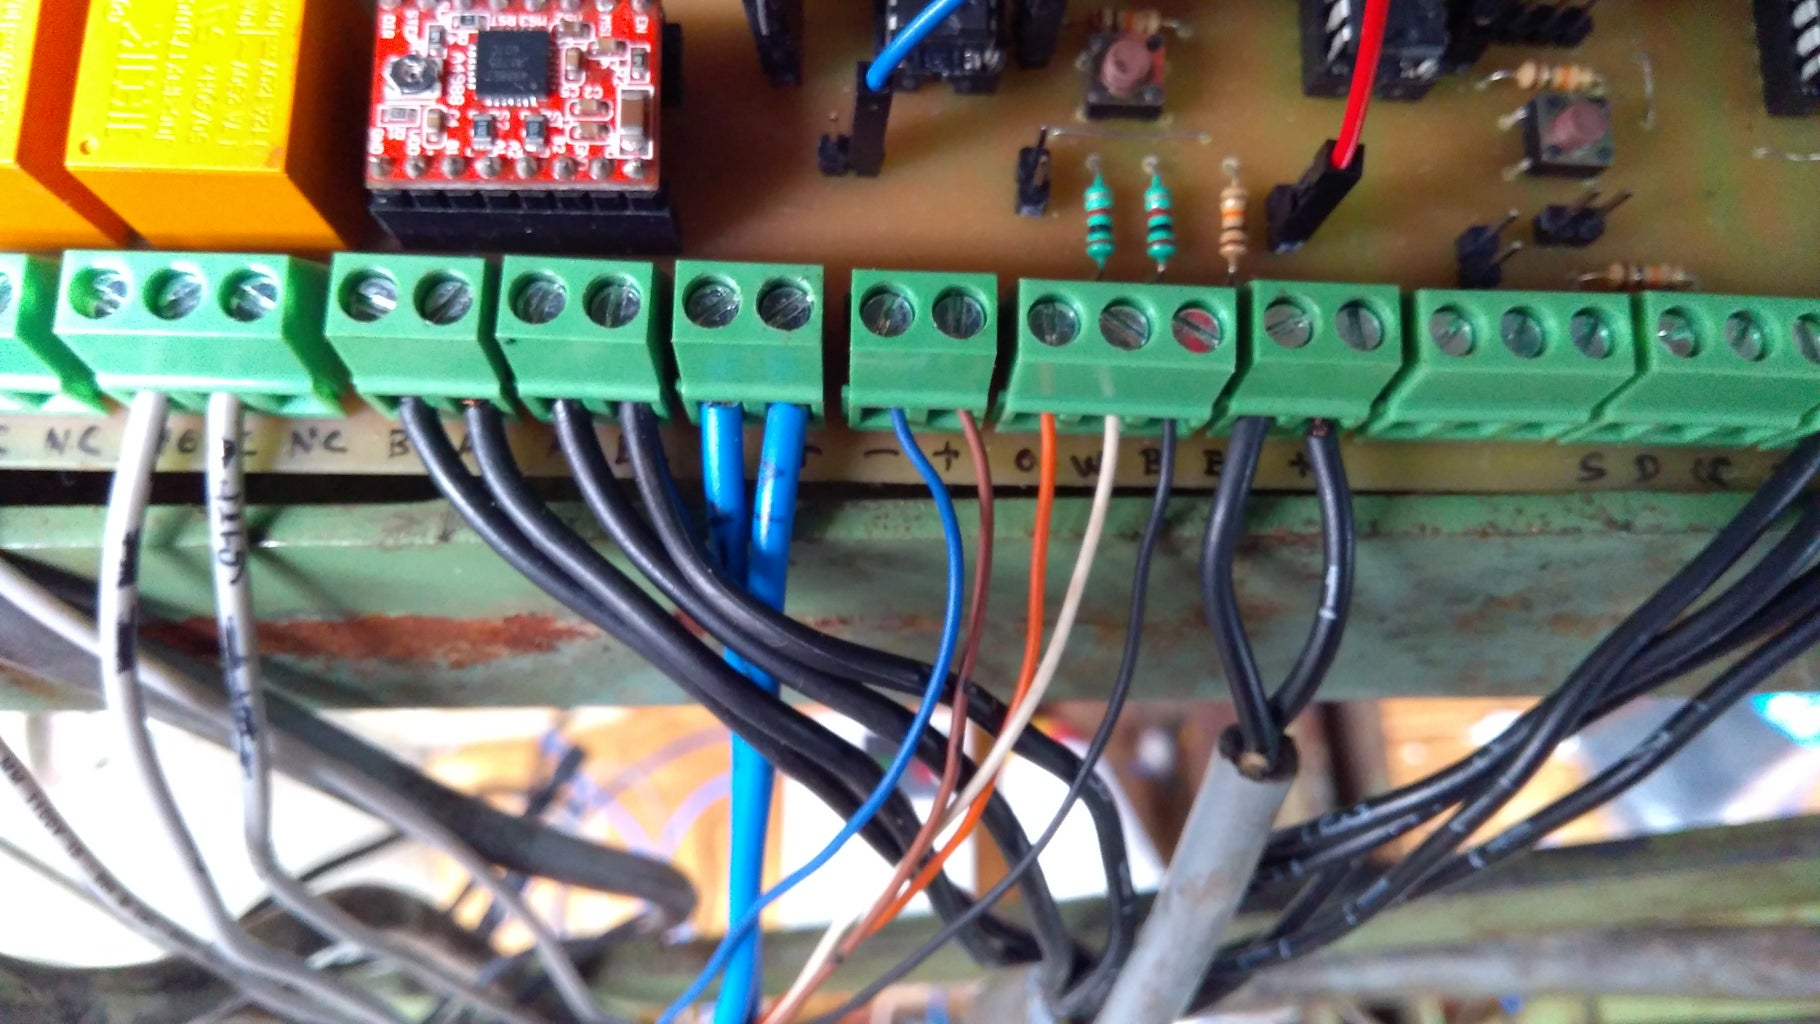 Inteerfacing of the Motherboard With the DigiCone MDF Machine